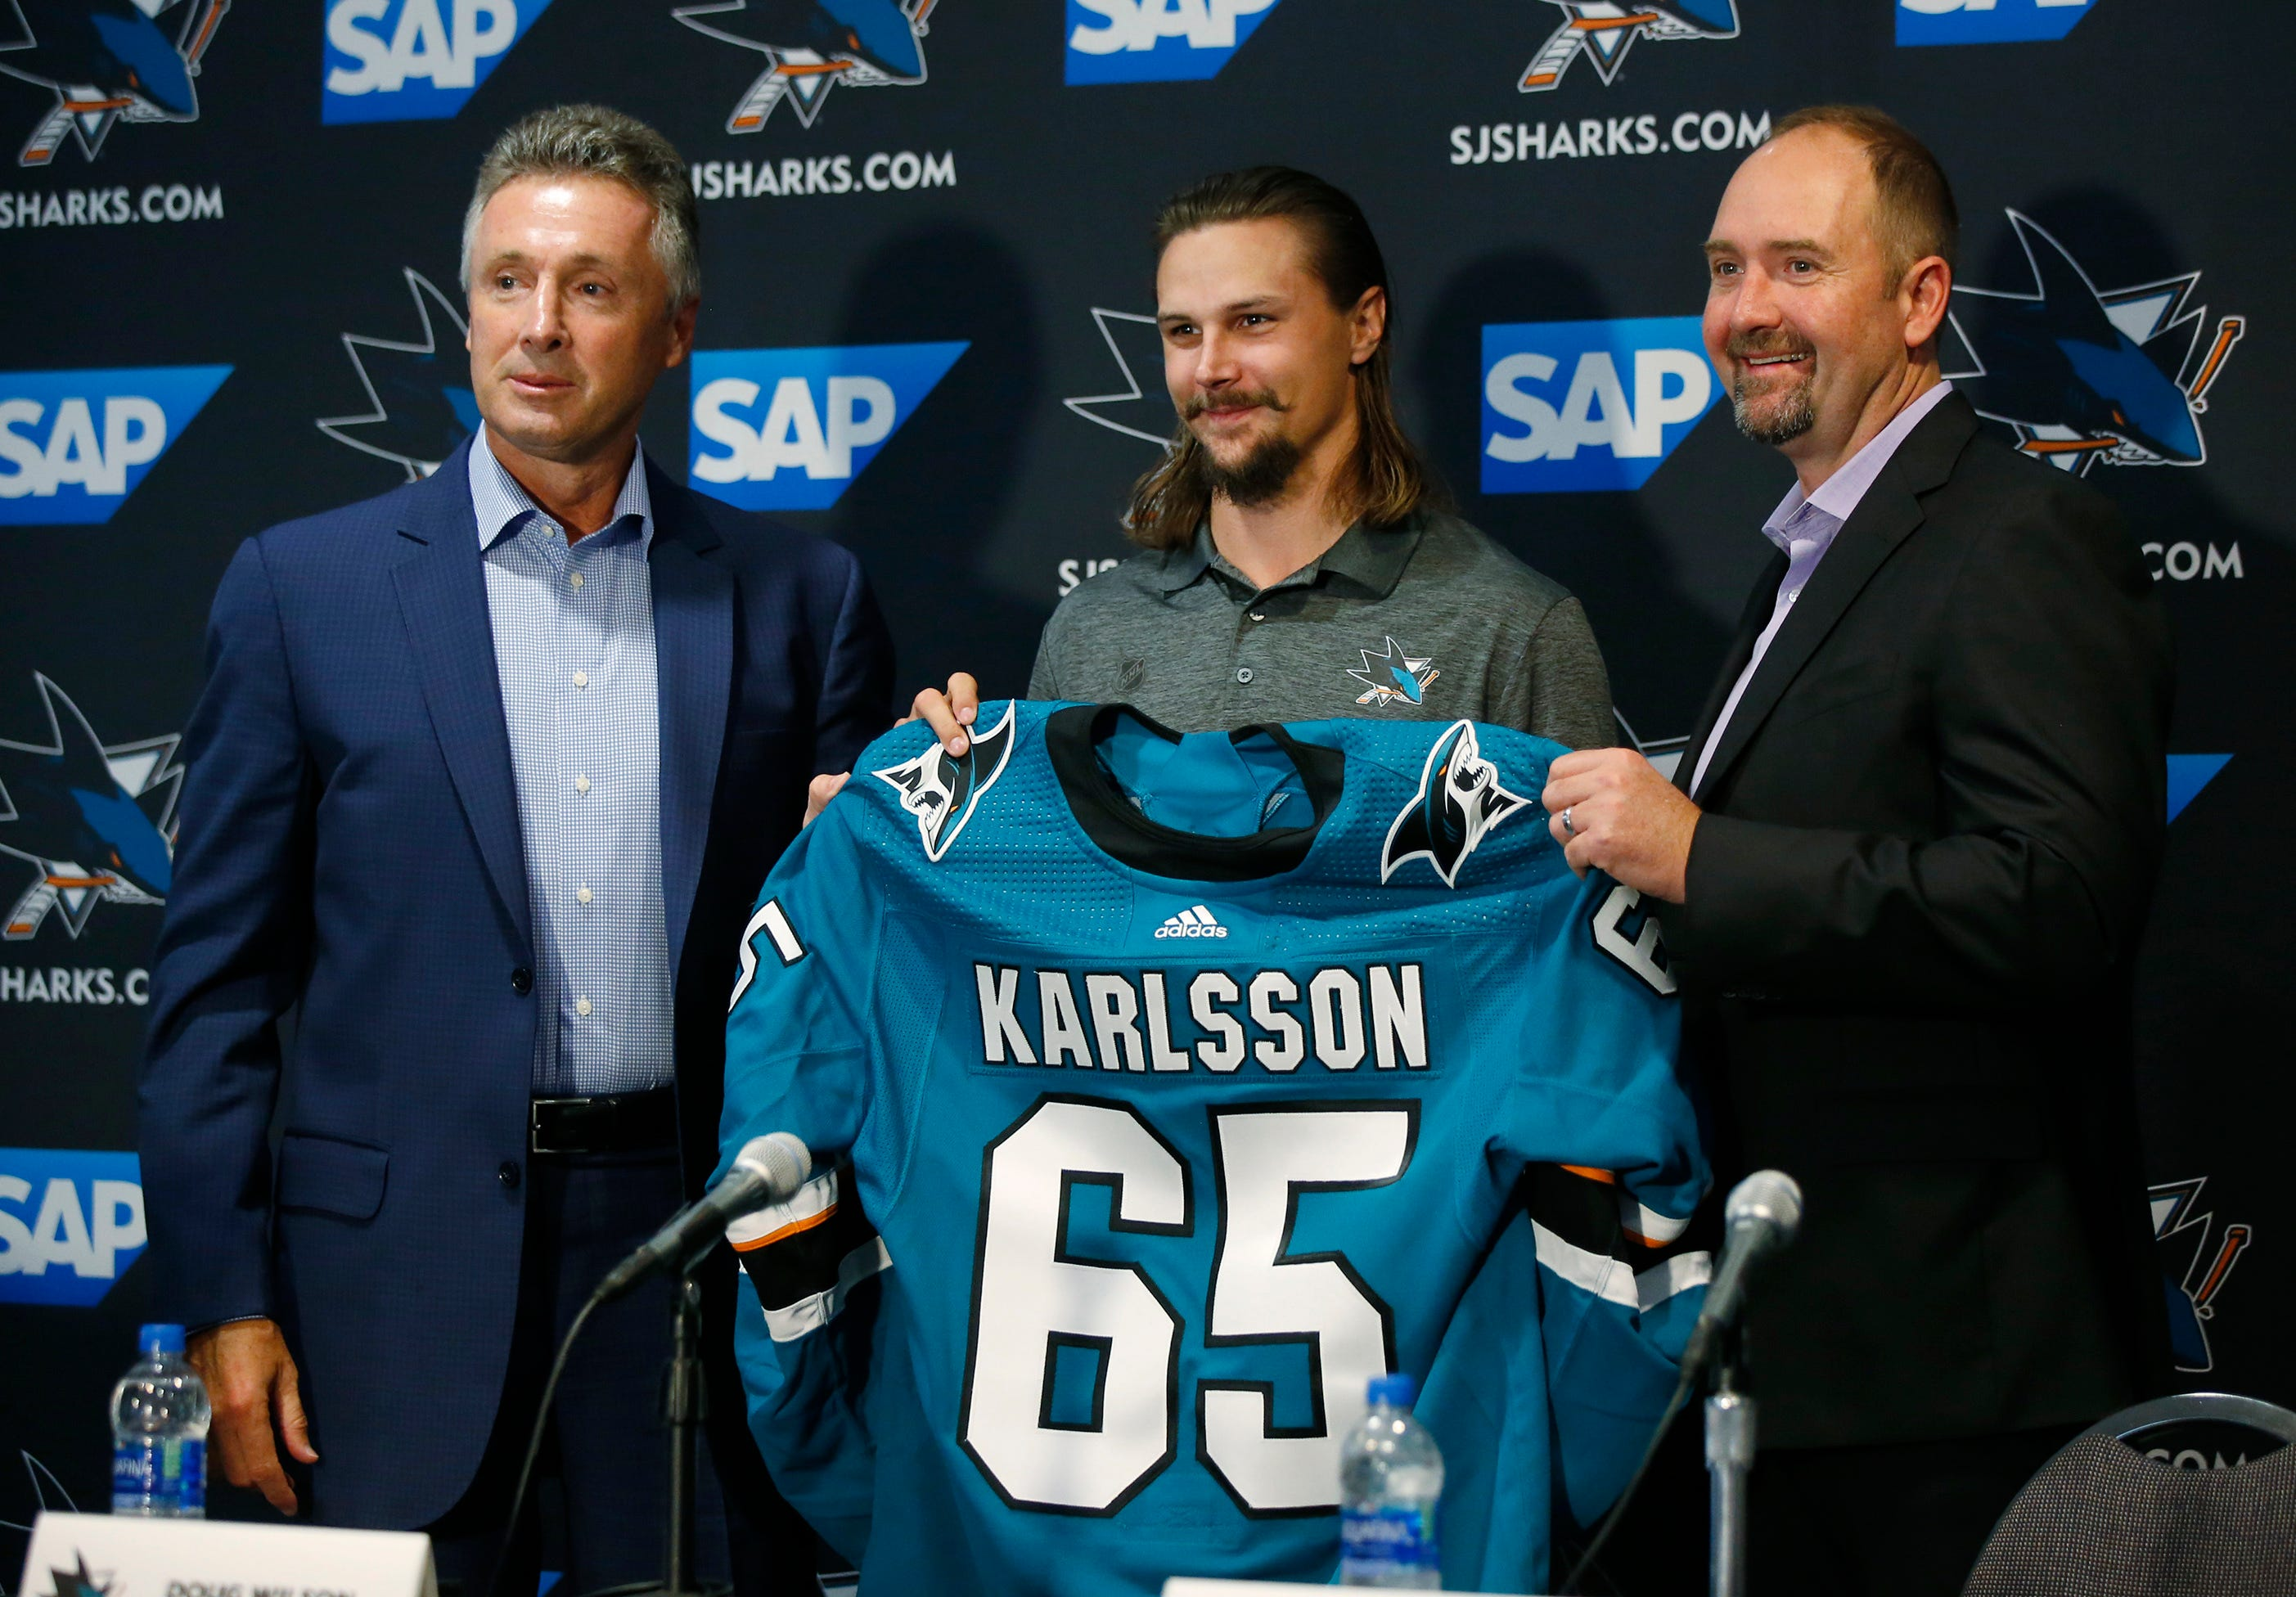 Erik Karlsson looks to fit in on first day with Sharks